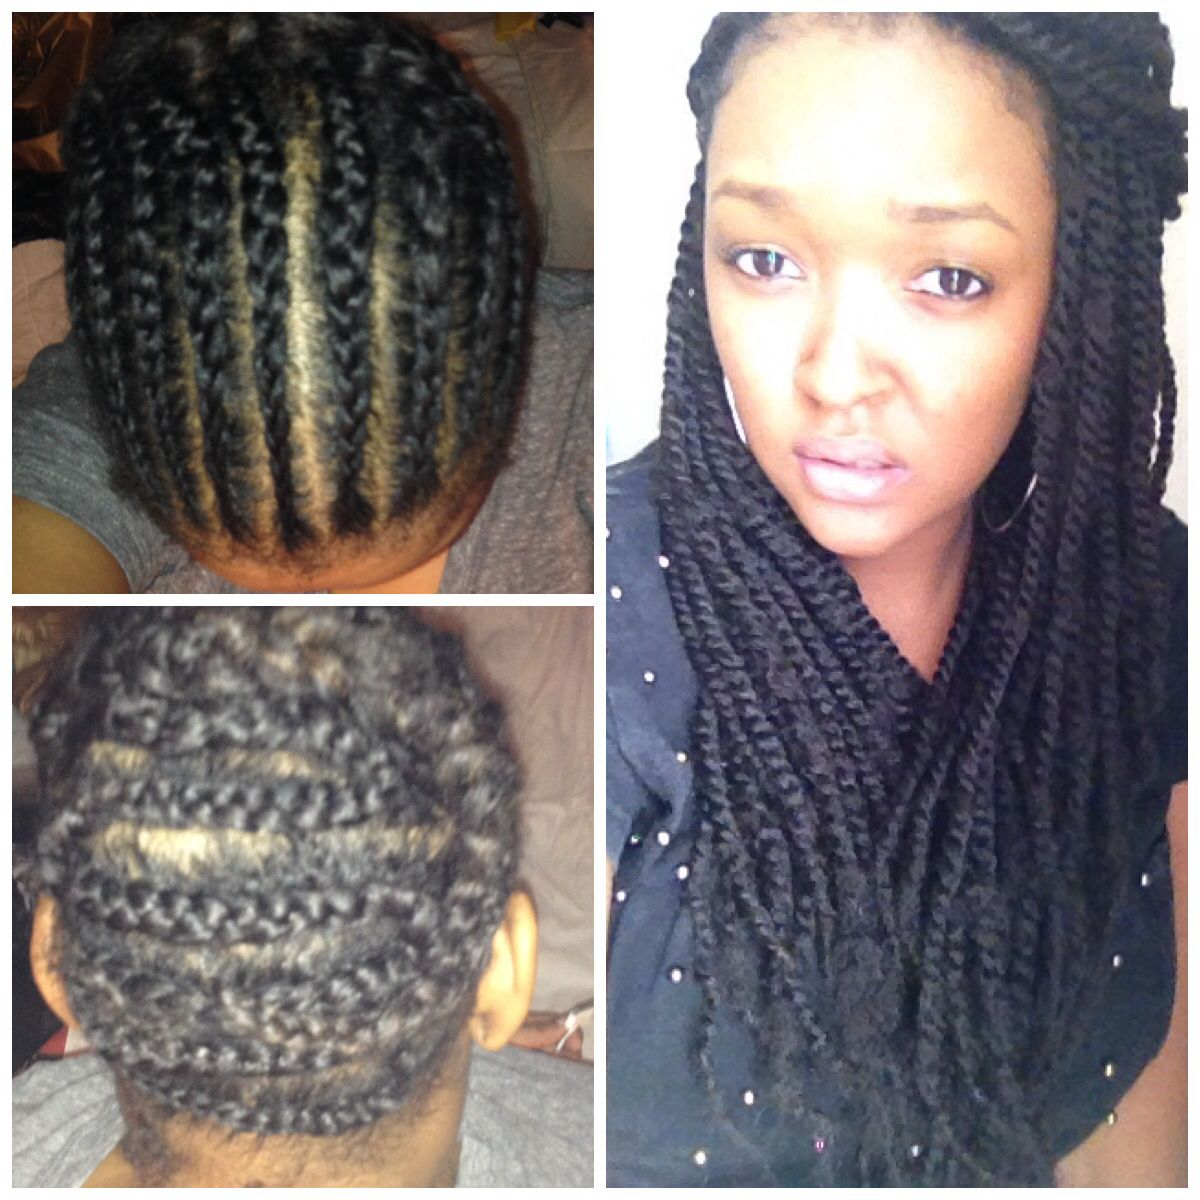 Pin By Cii Marqui On Cii Marqui S Hair Hair Styles Box Braids Hairstyles Marley Braiding Hair